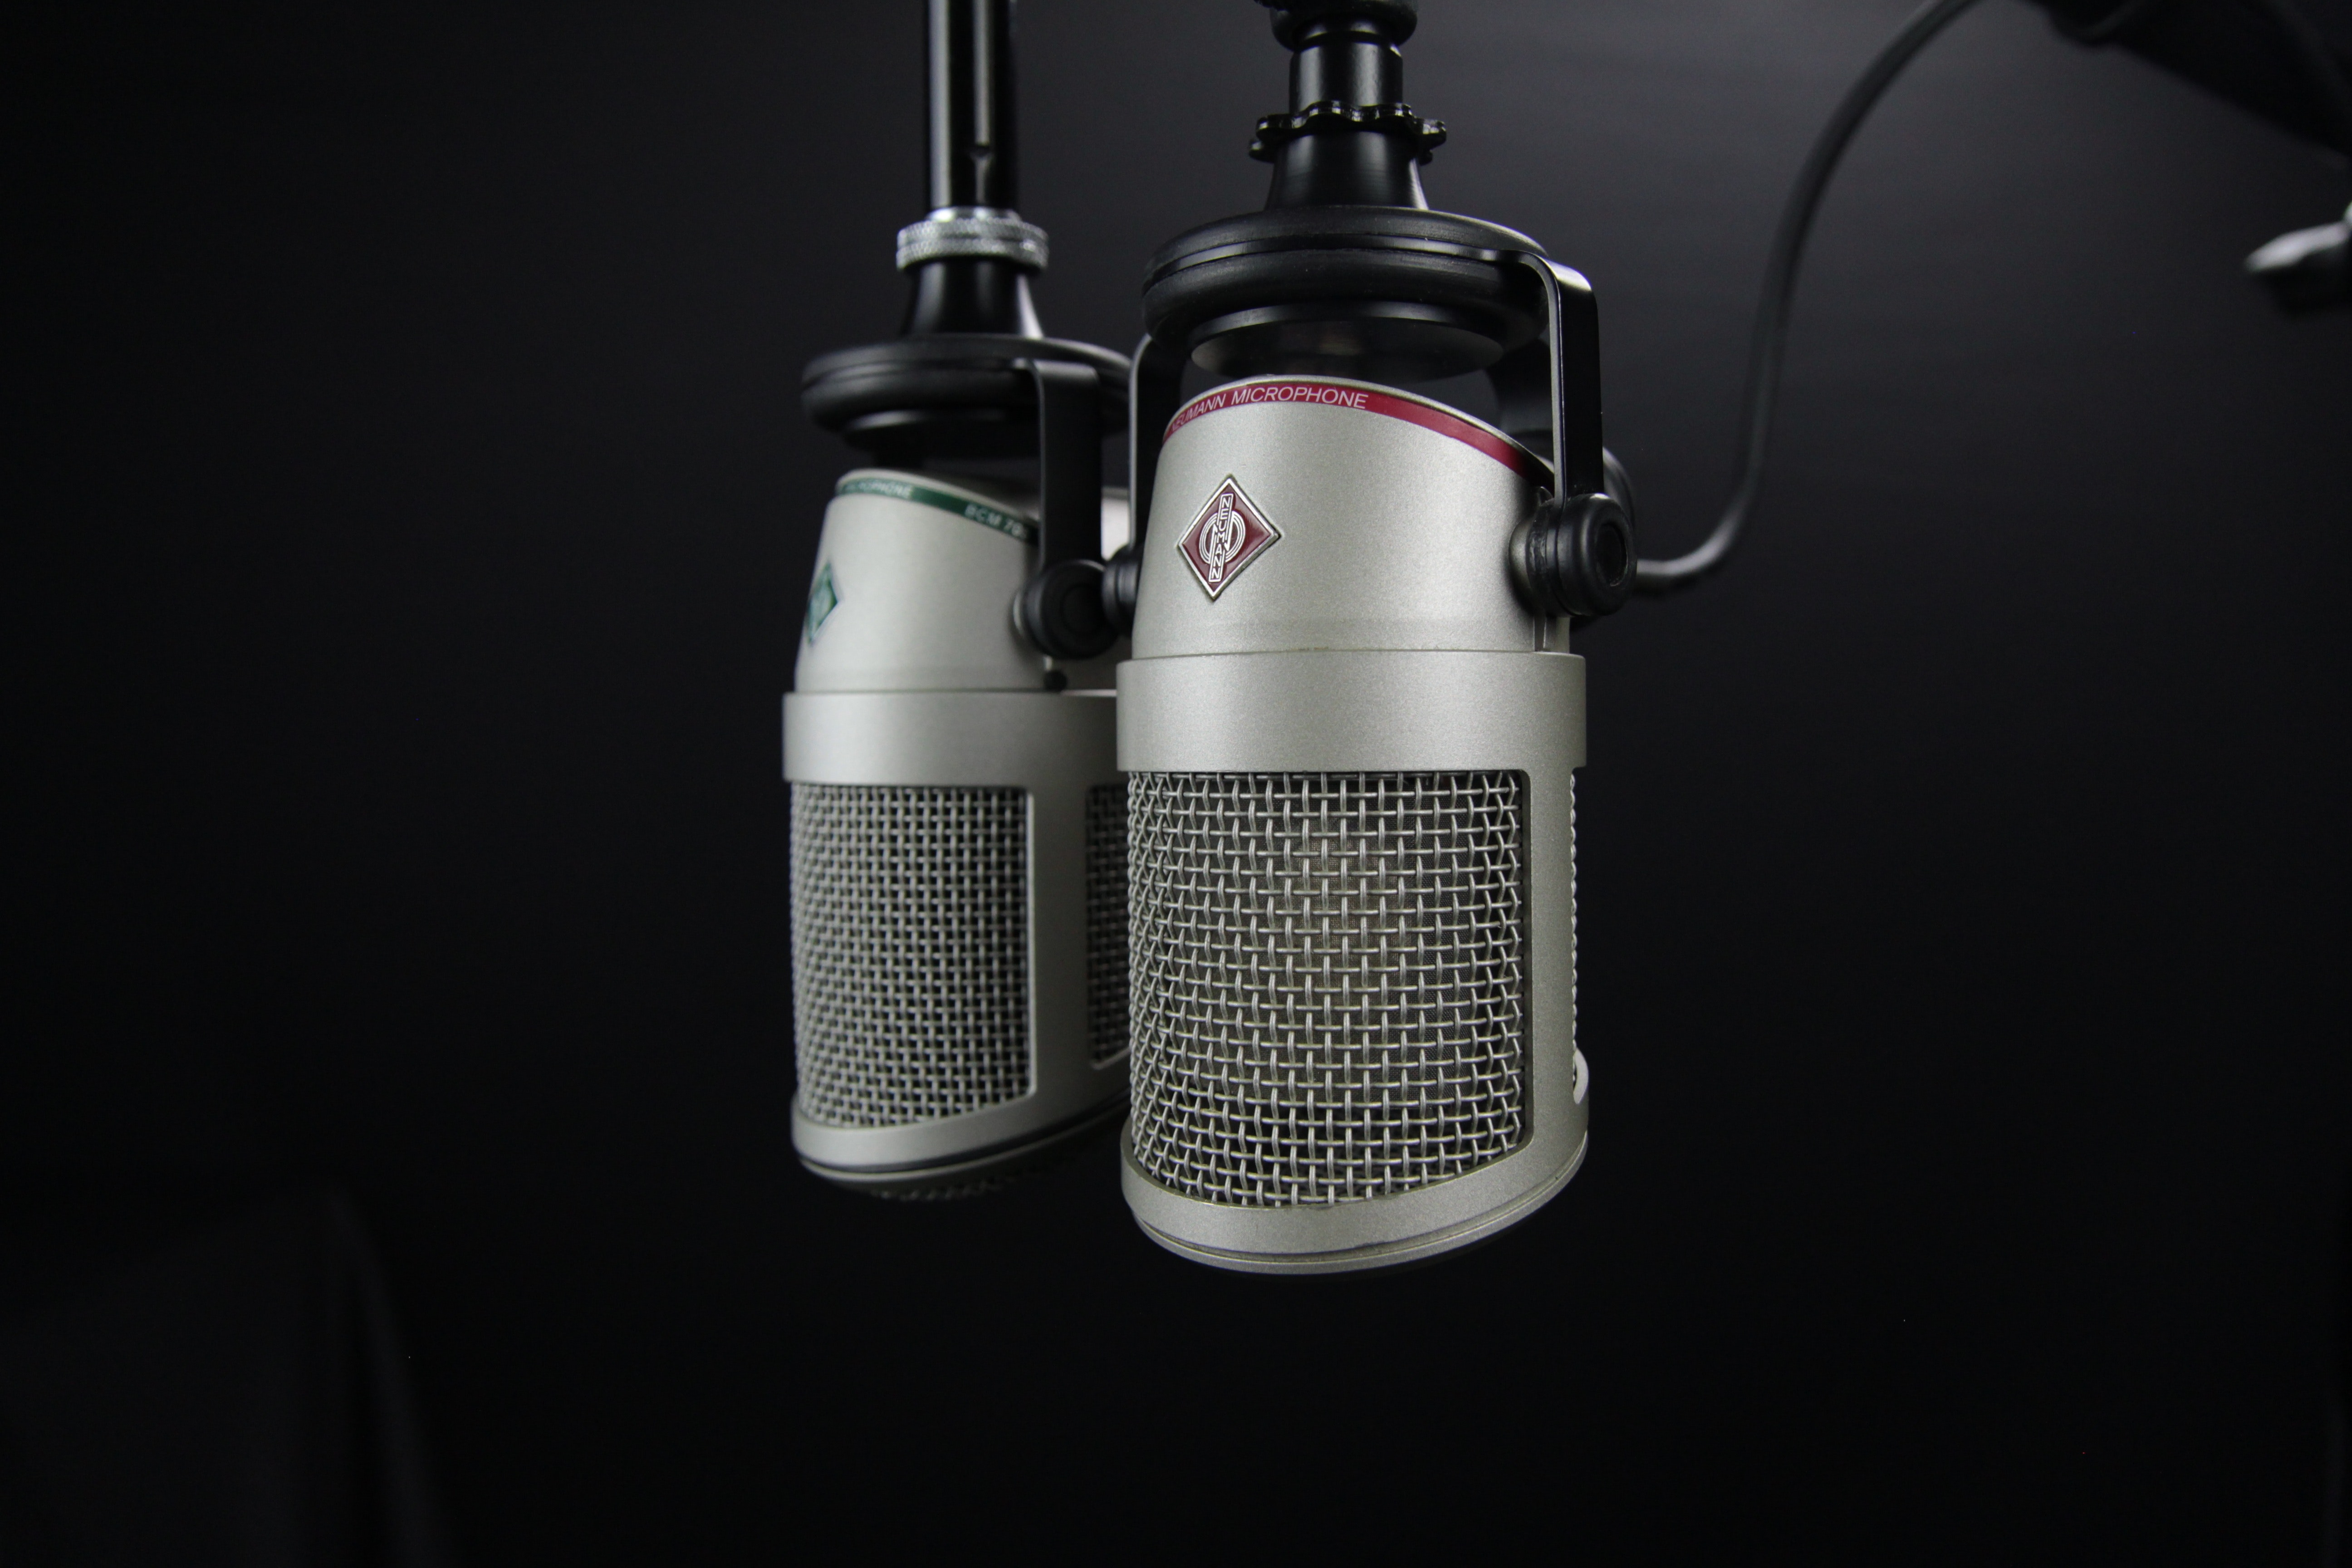 Picture of mocrophone for recording of podcasts